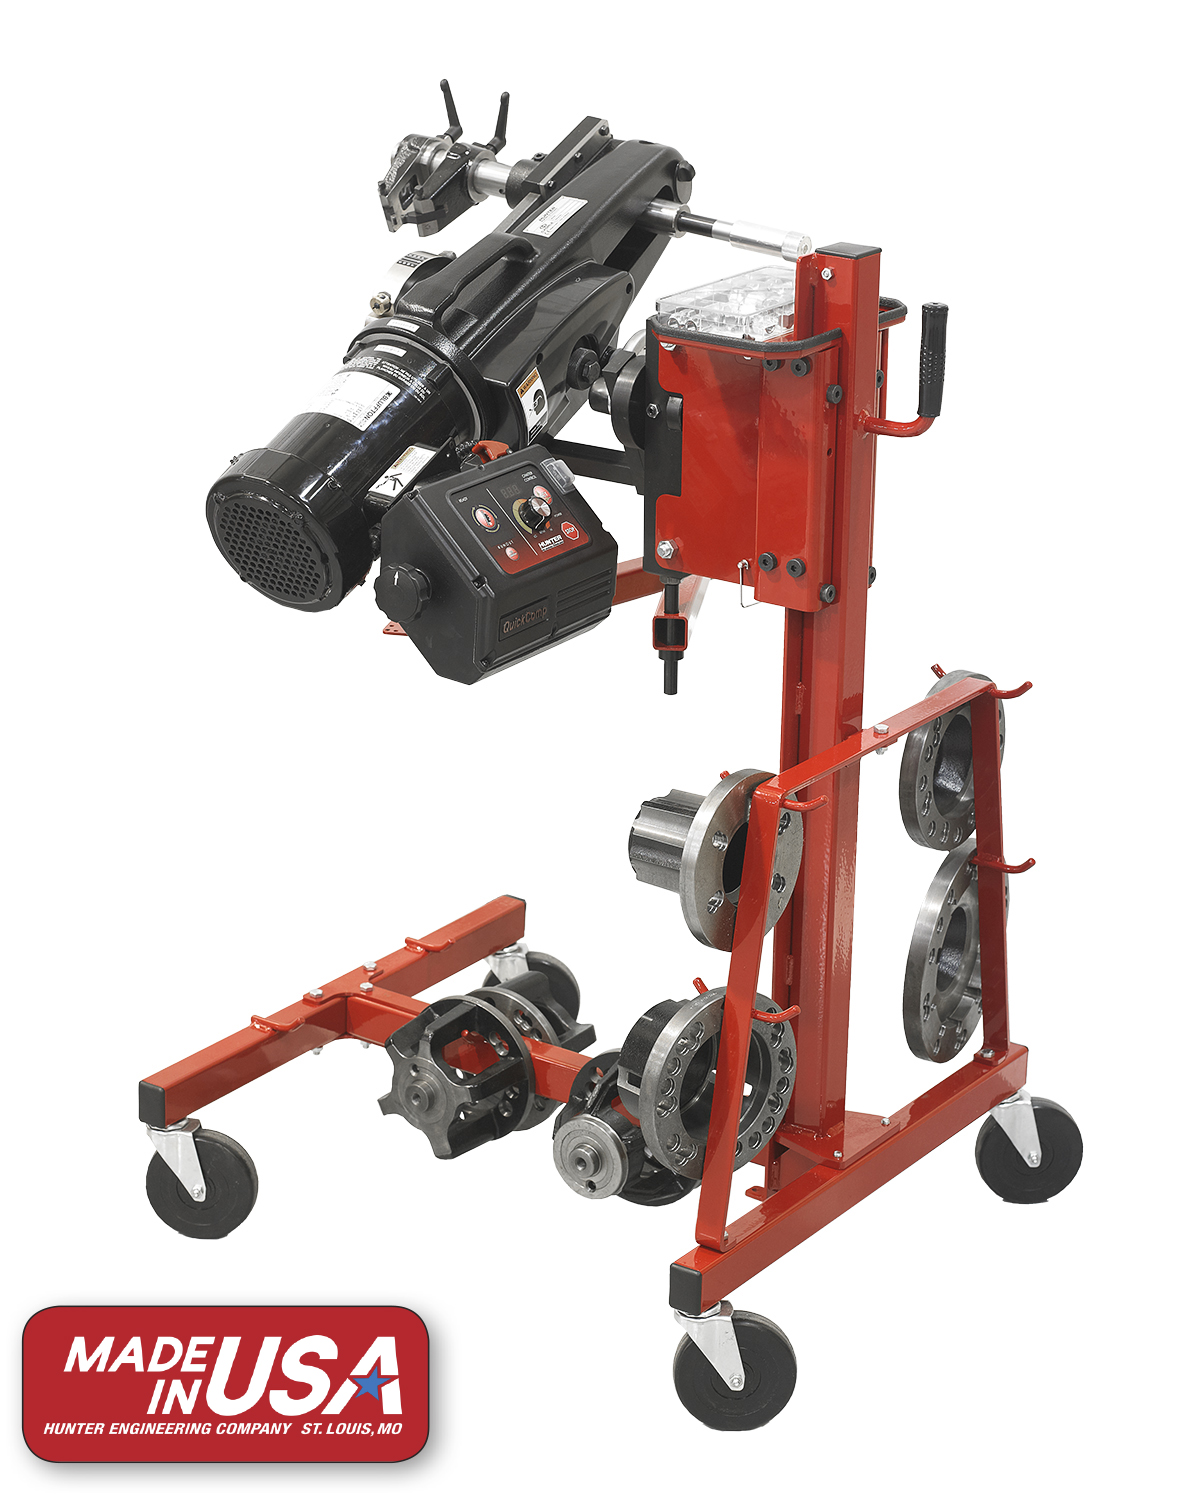 SEMA Show, Day Two: Hunter's QuickComp lathe is now made in the USA